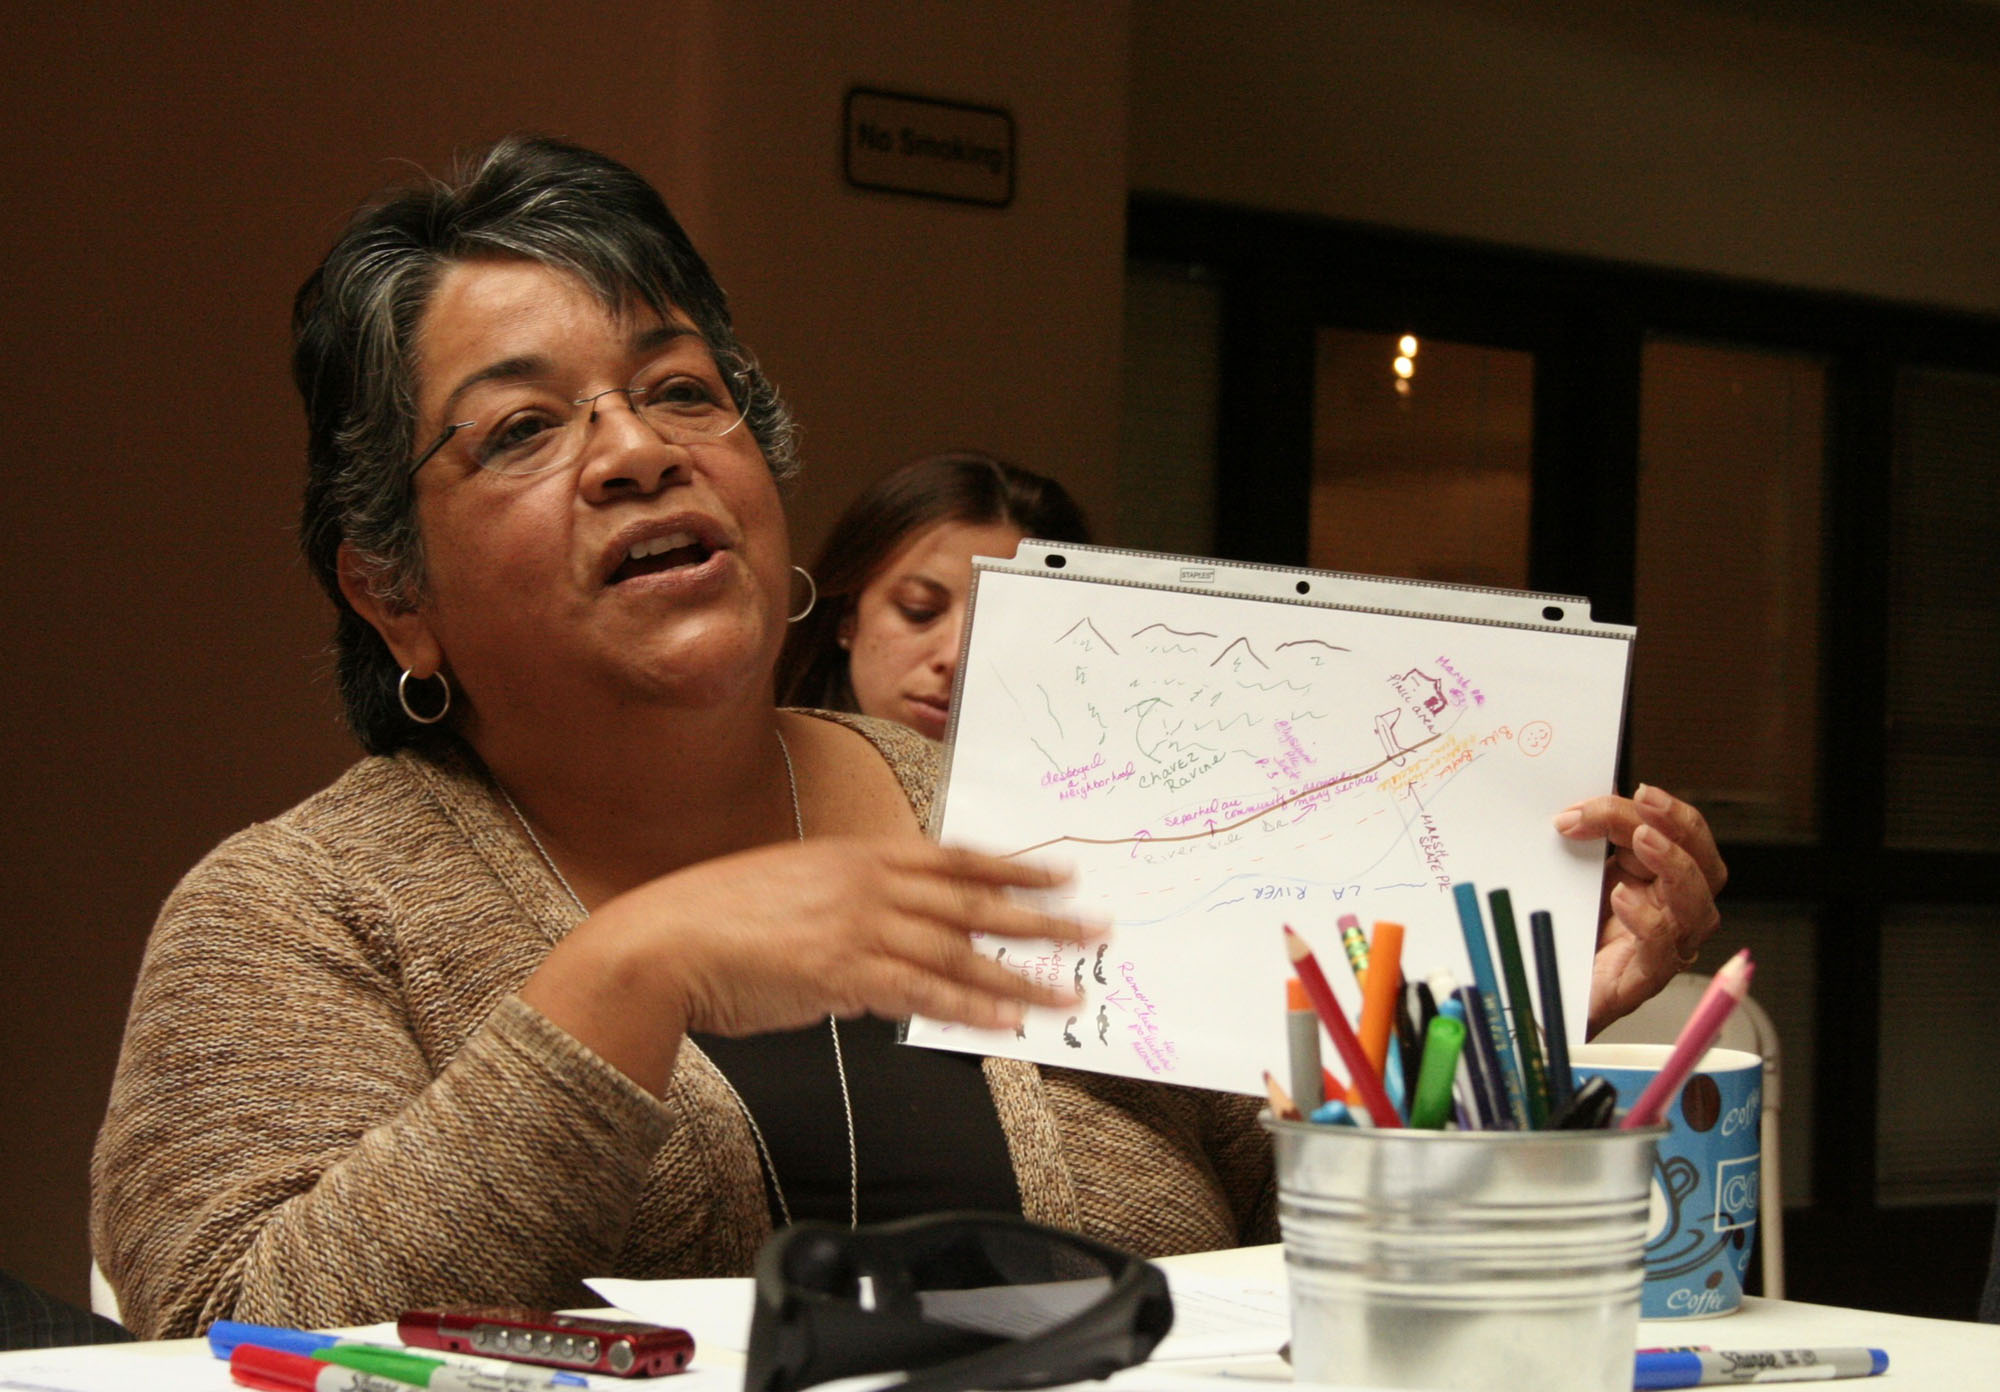 Elysian Valley community activist Cecilia Dominguez displays her personal map